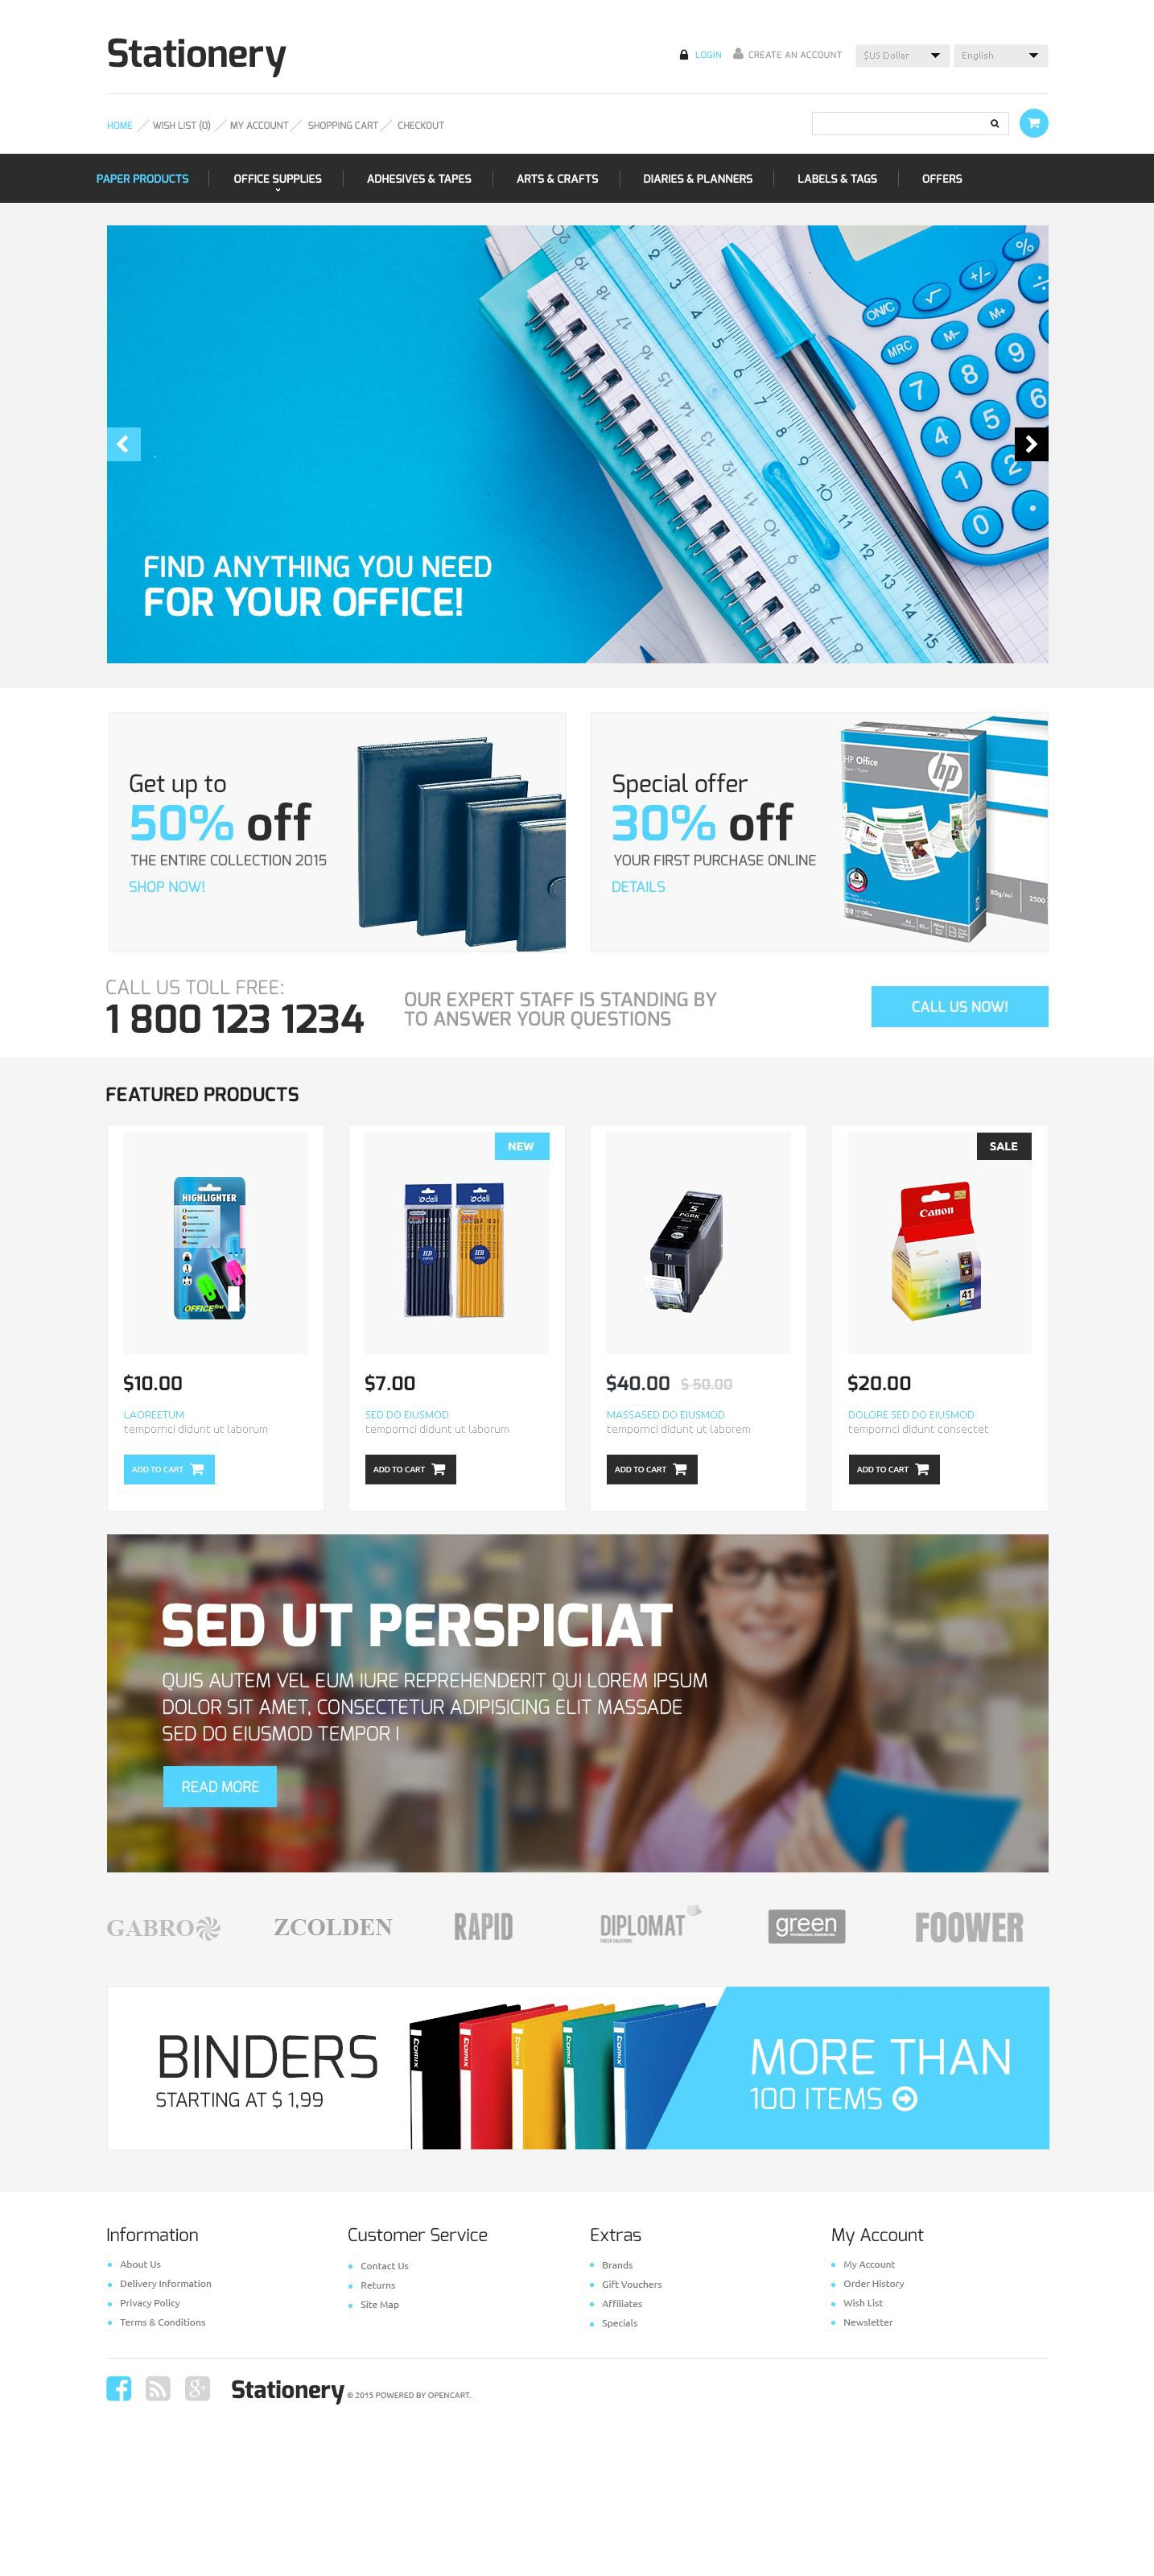 The Stationary Store OpenCart Design 53339, one of the best OpenCart templates of its kind (business, most popular), also known as stationary store OpenCart template, stationery OpenCart template, office OpenCart template, accessories OpenCart template, writing OpenCart template, materials OpenCart template, pen OpenCart template, marker OpenCart template, ink OpenCart template, paper OpenCart template, notebook OpenCart template, pencil and related with stationary store, stationery, office, accessories, writing, materials, pen, marker, ink, paper, notebook, pencil, etc.